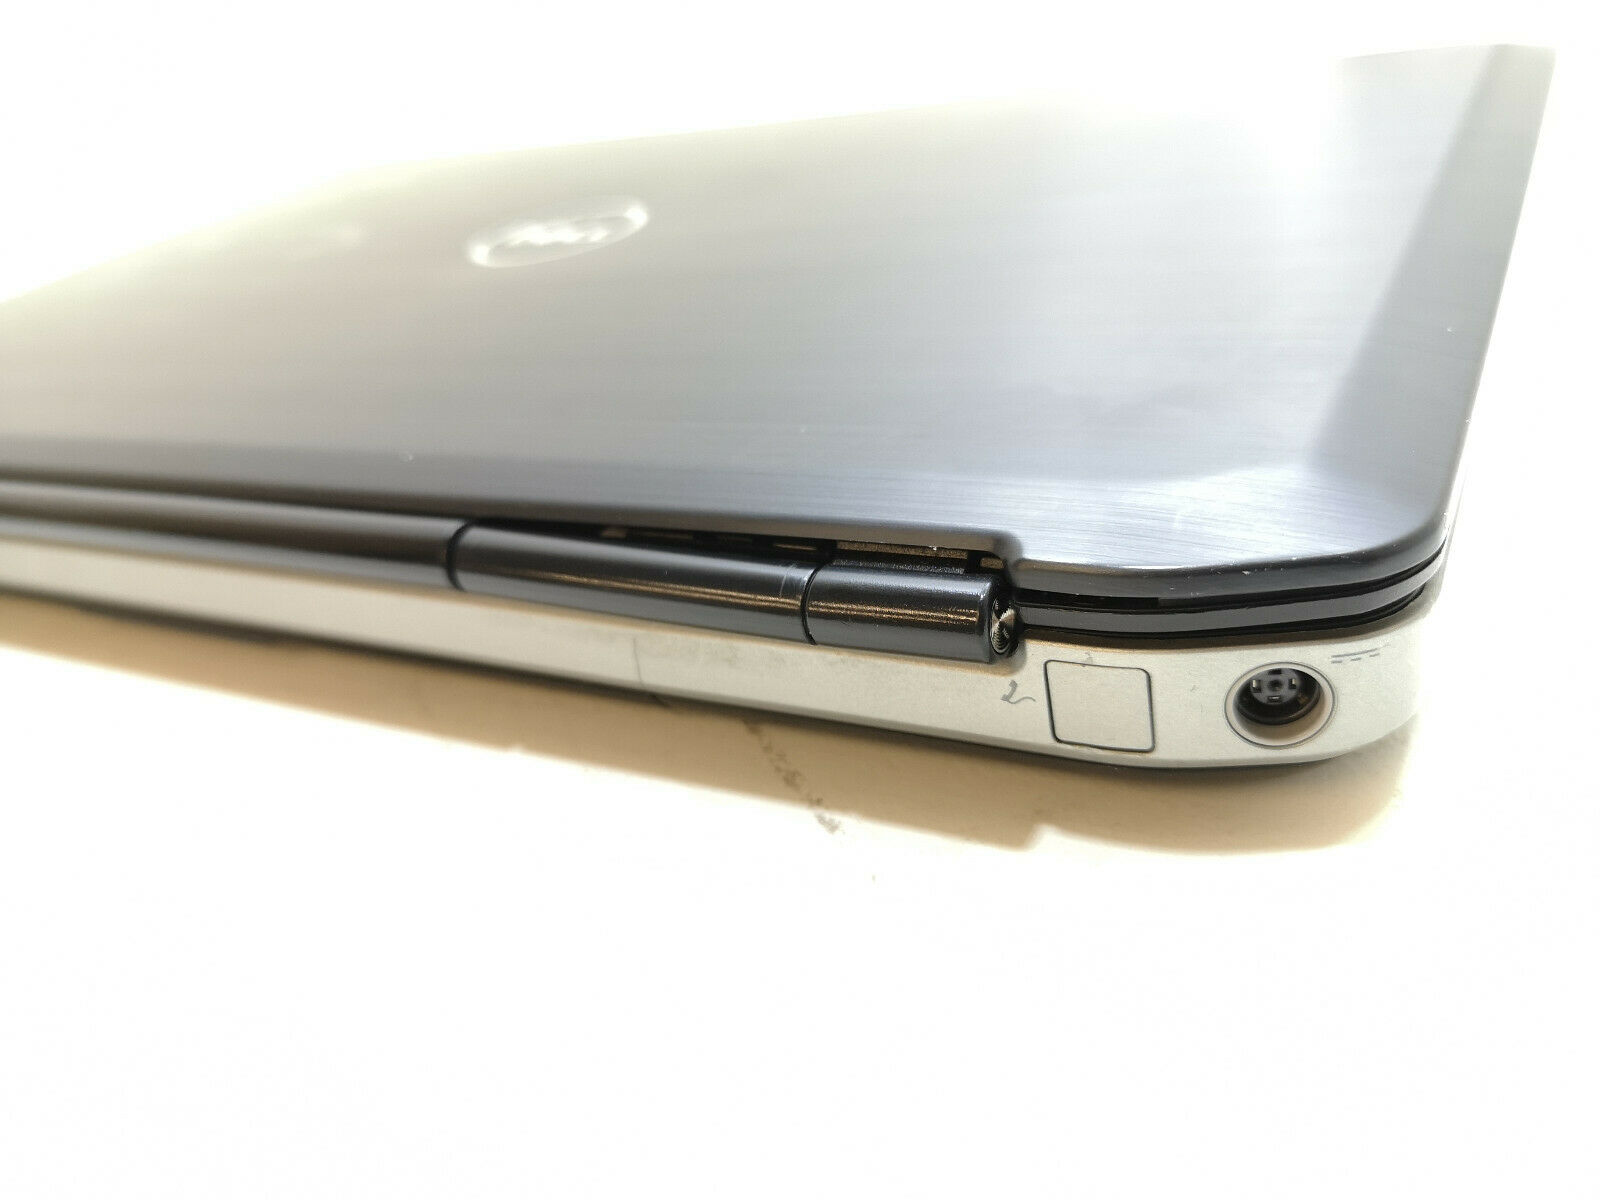 Dell Latitude E5530 No 6